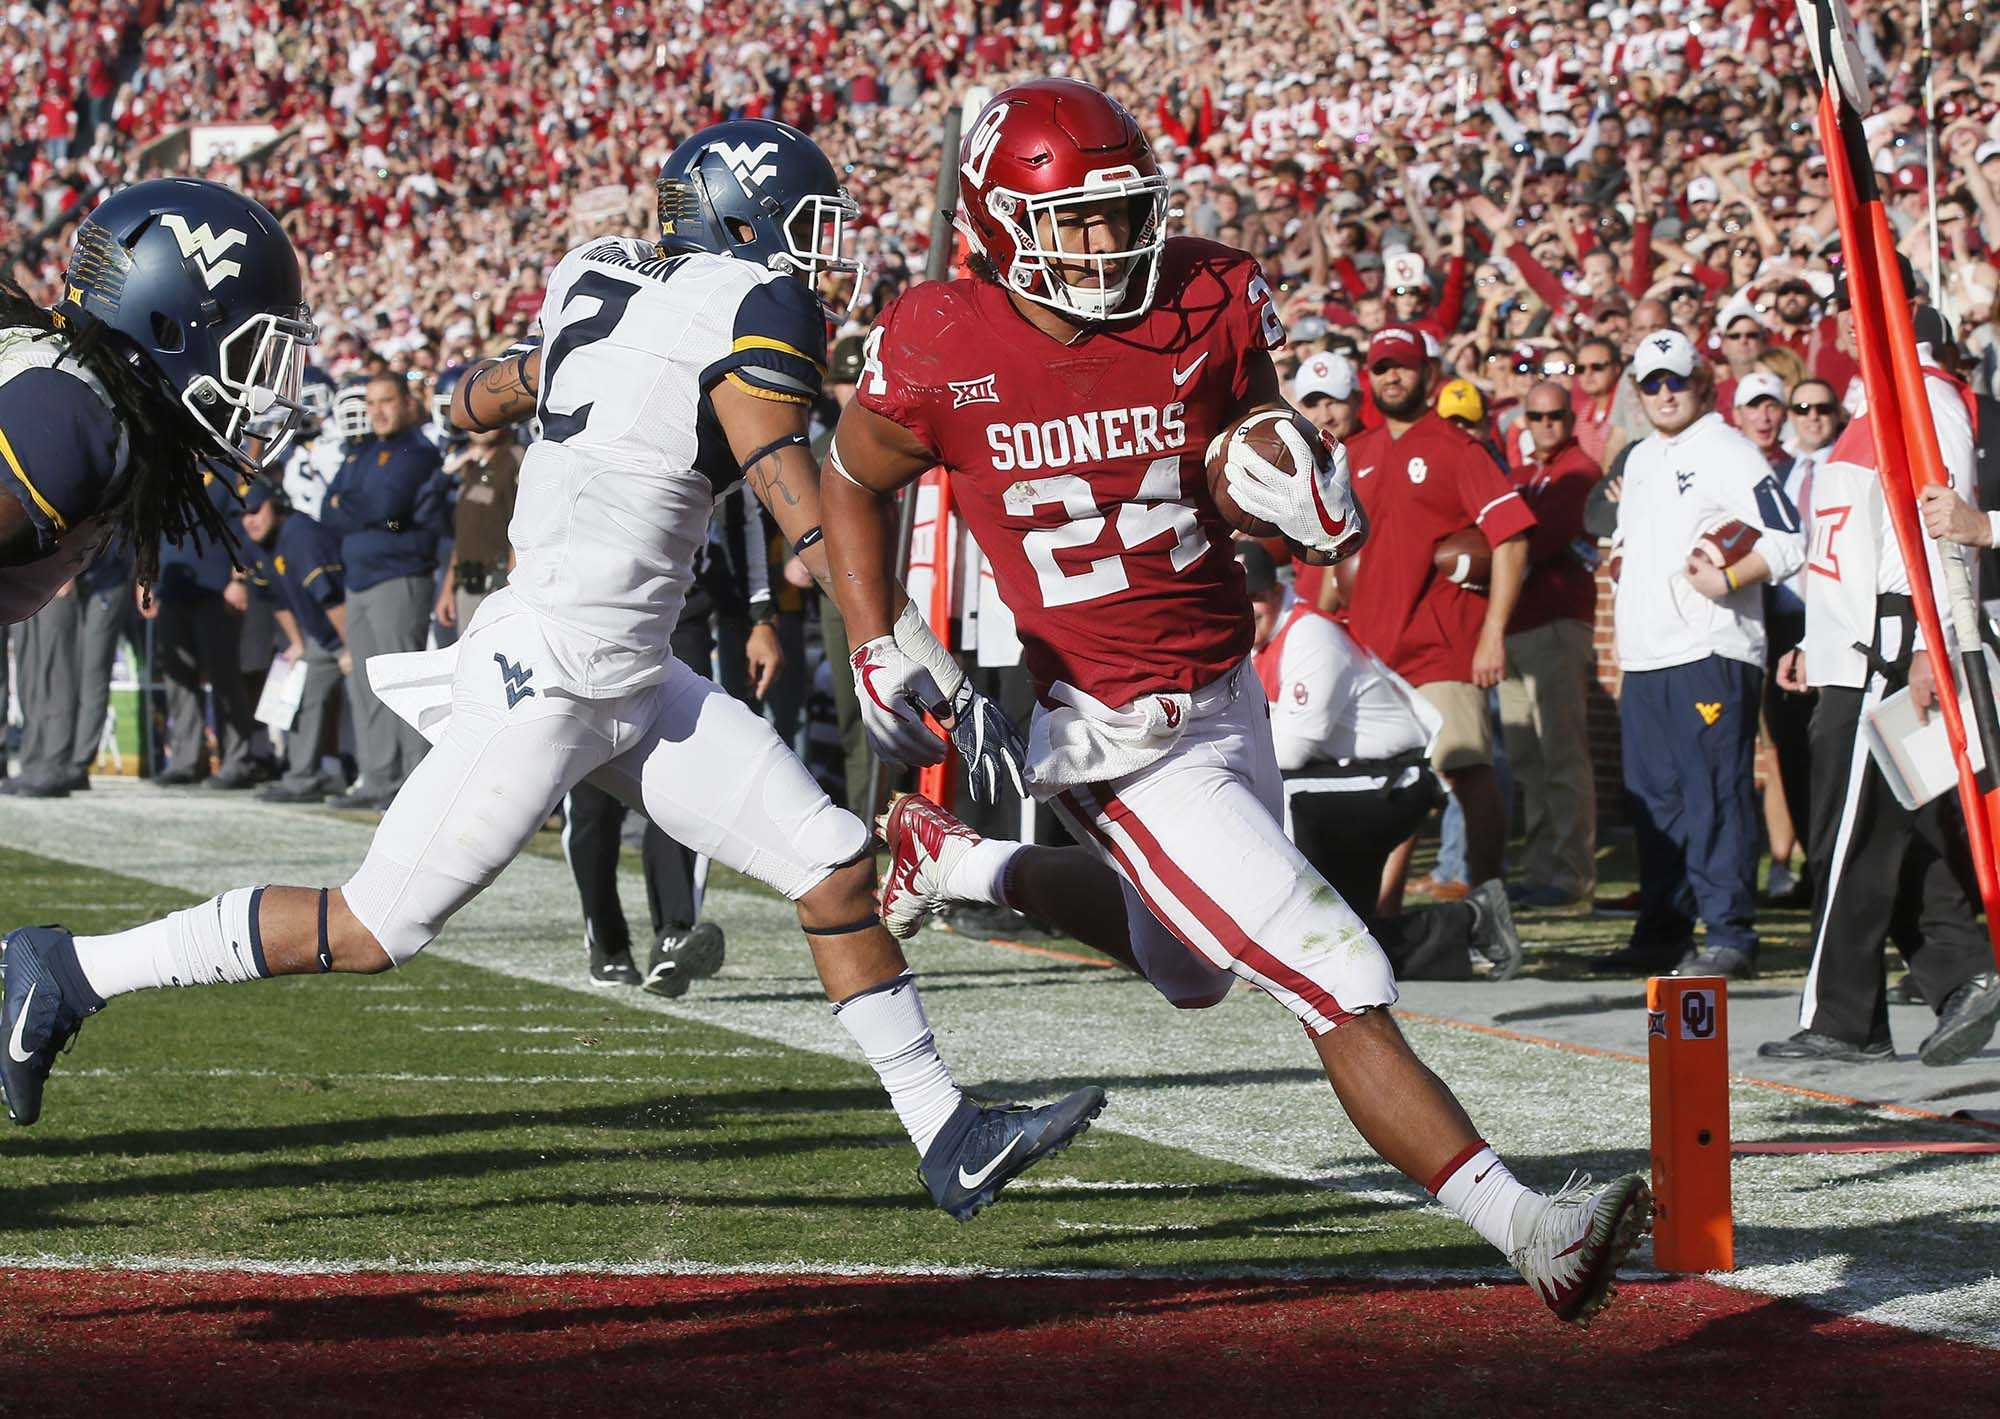 Oklahoma RB Rodney Anderson facing rape allegation